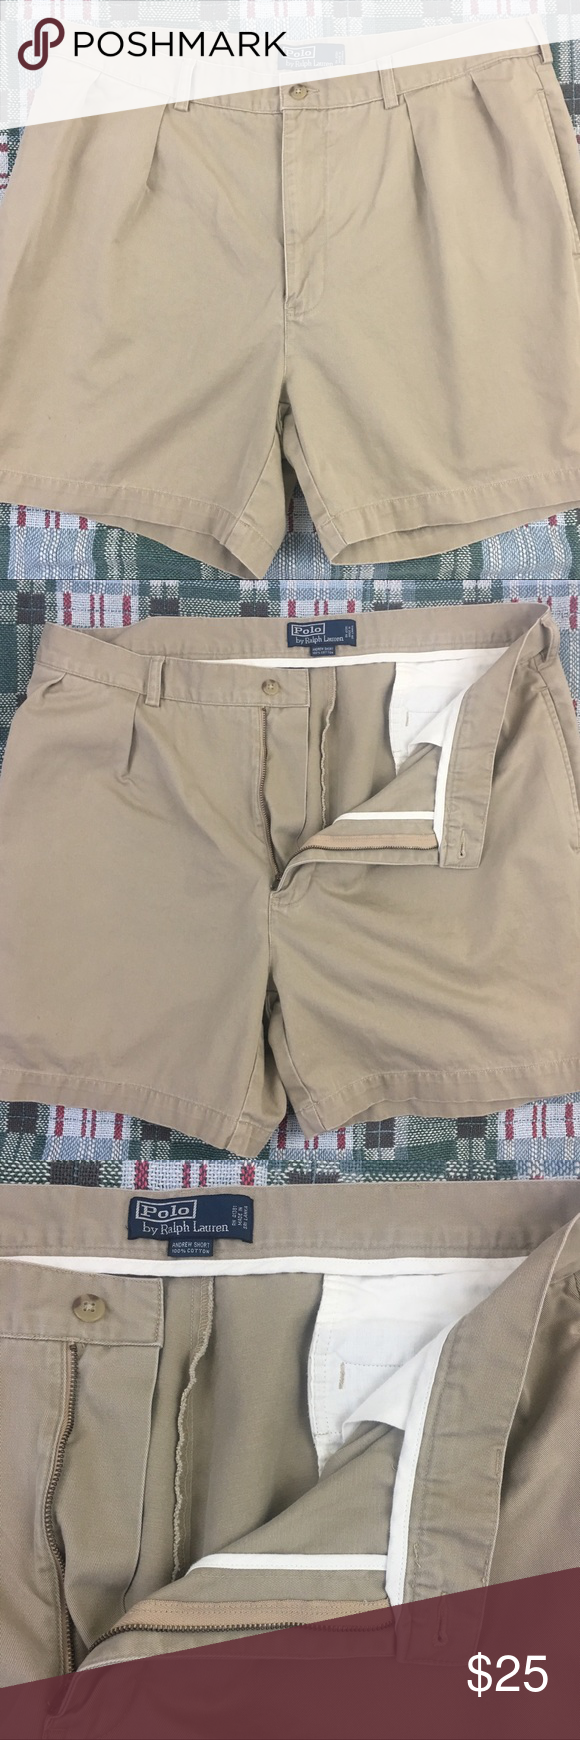 Polo by Ralph Lauren Andrew Short Chino Style 38 Brand: Polo by Ralph Lauren, Andrew Short, Chino  Condition: This item is in Good Pre-Owned Condition! There are NO Major Flaws with this item, and is free and clear of any Noticeable Stains, Rips, Tears or Pulls of fabric. Overall This Piece Looks Great and you will love it at a fraction of the price!  Material: 100% Cotton  Size: 38 Waist 💥Top Rated Seller 💥Top 10% Seller 💥Top 10% Sharer 💥Posh Mentor 💥Super Fast Shipping Polo by…